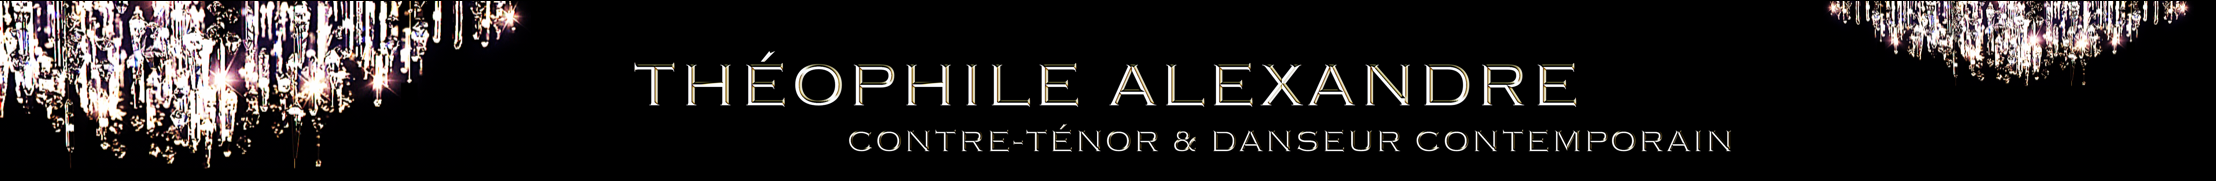 Theophile Alexandre Logo